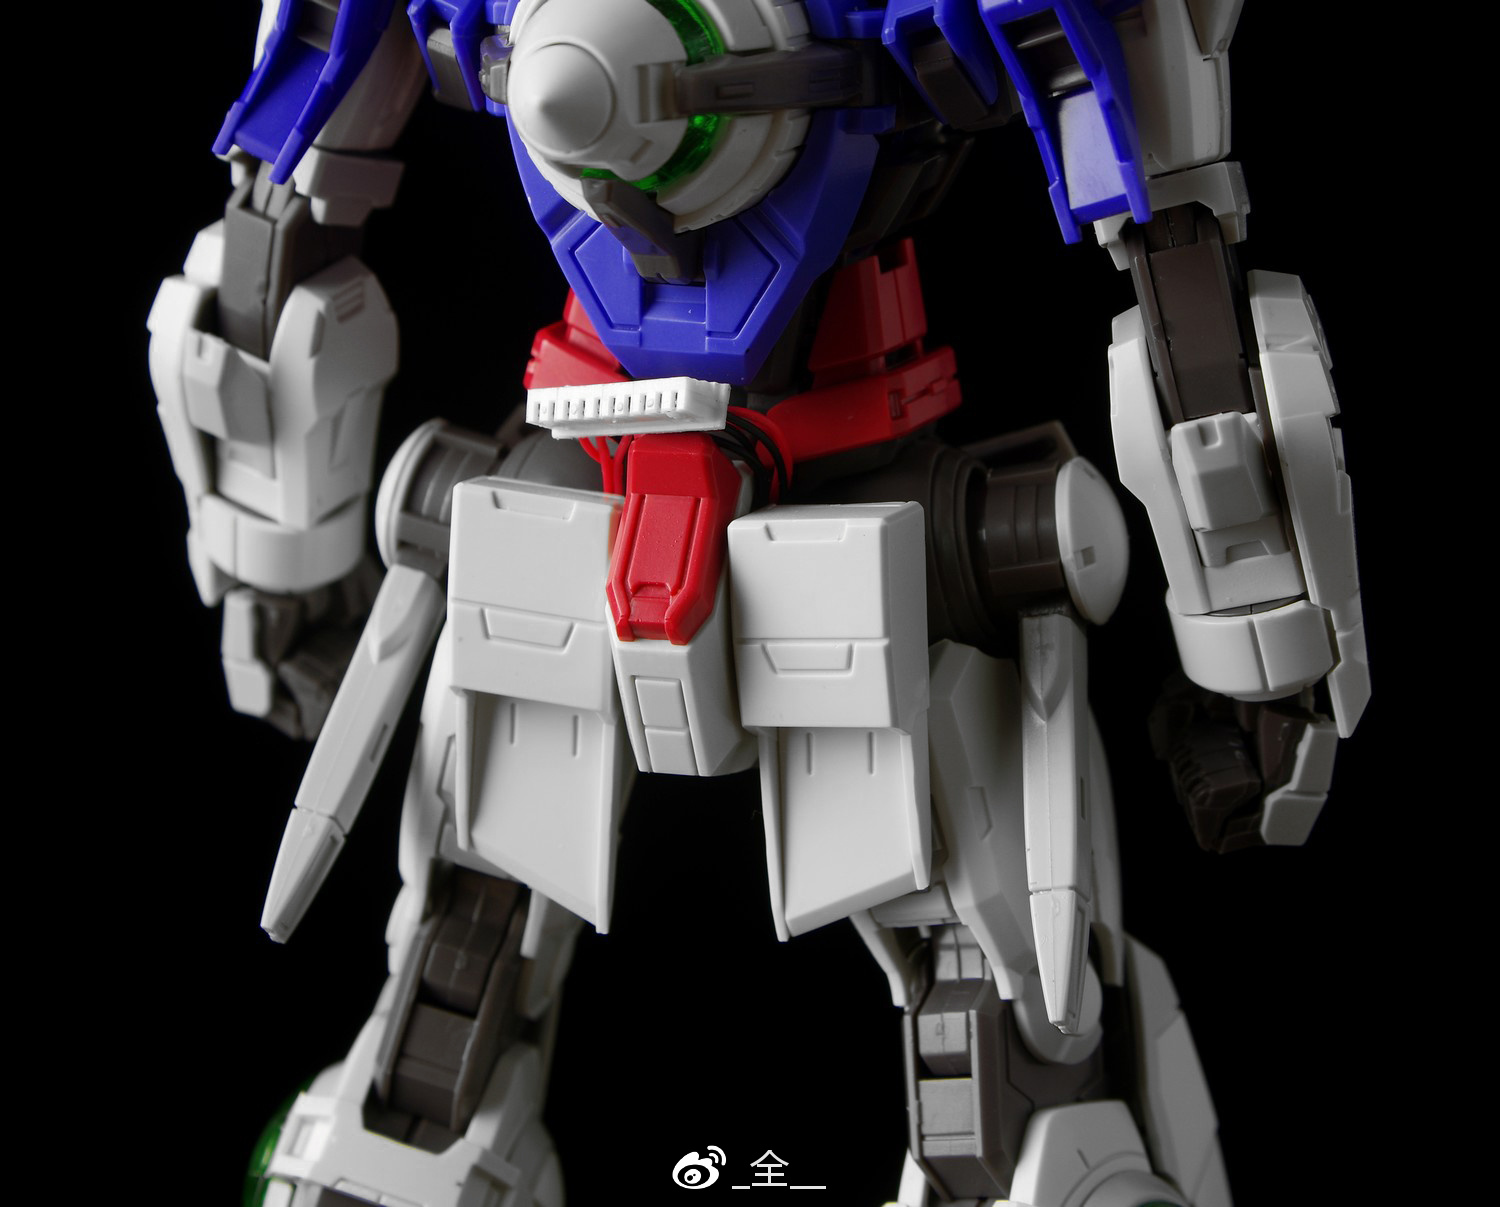 S269_mg_exia_led_hobby_star_inask_089.jpg